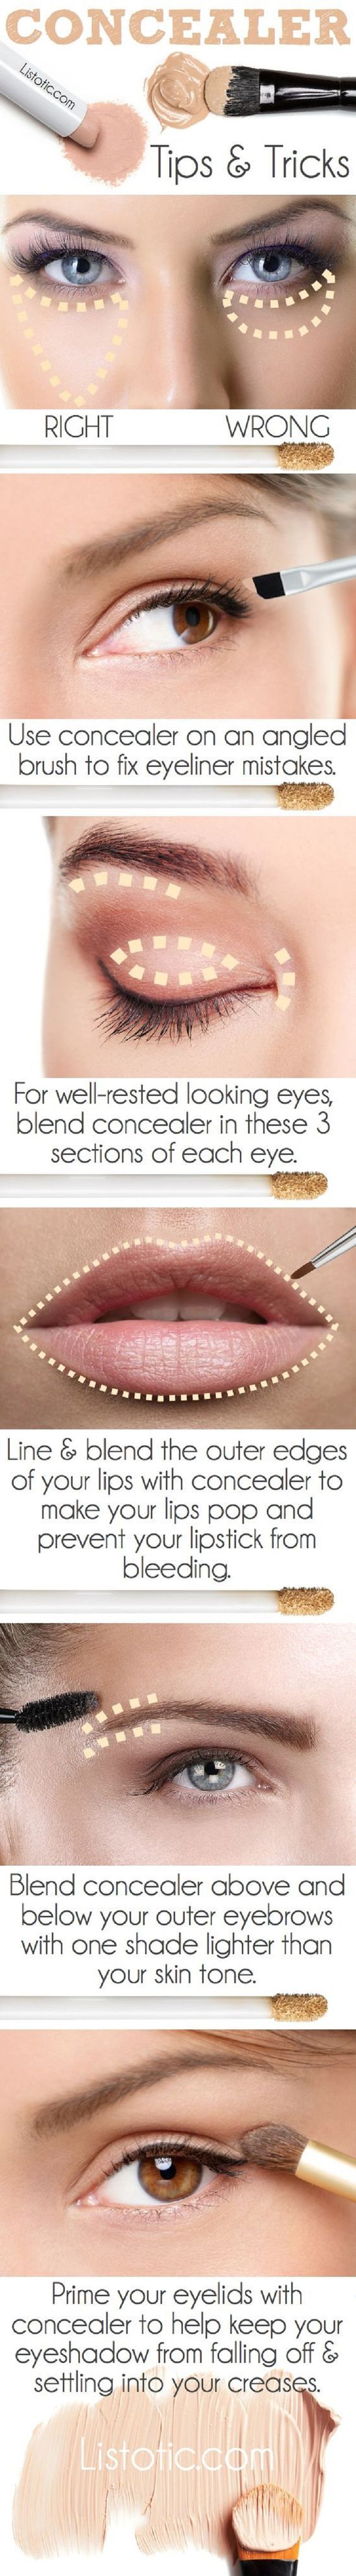 Use Your Concealer The Right Way - 13 Best Makeup Tutorials and Infographics for...